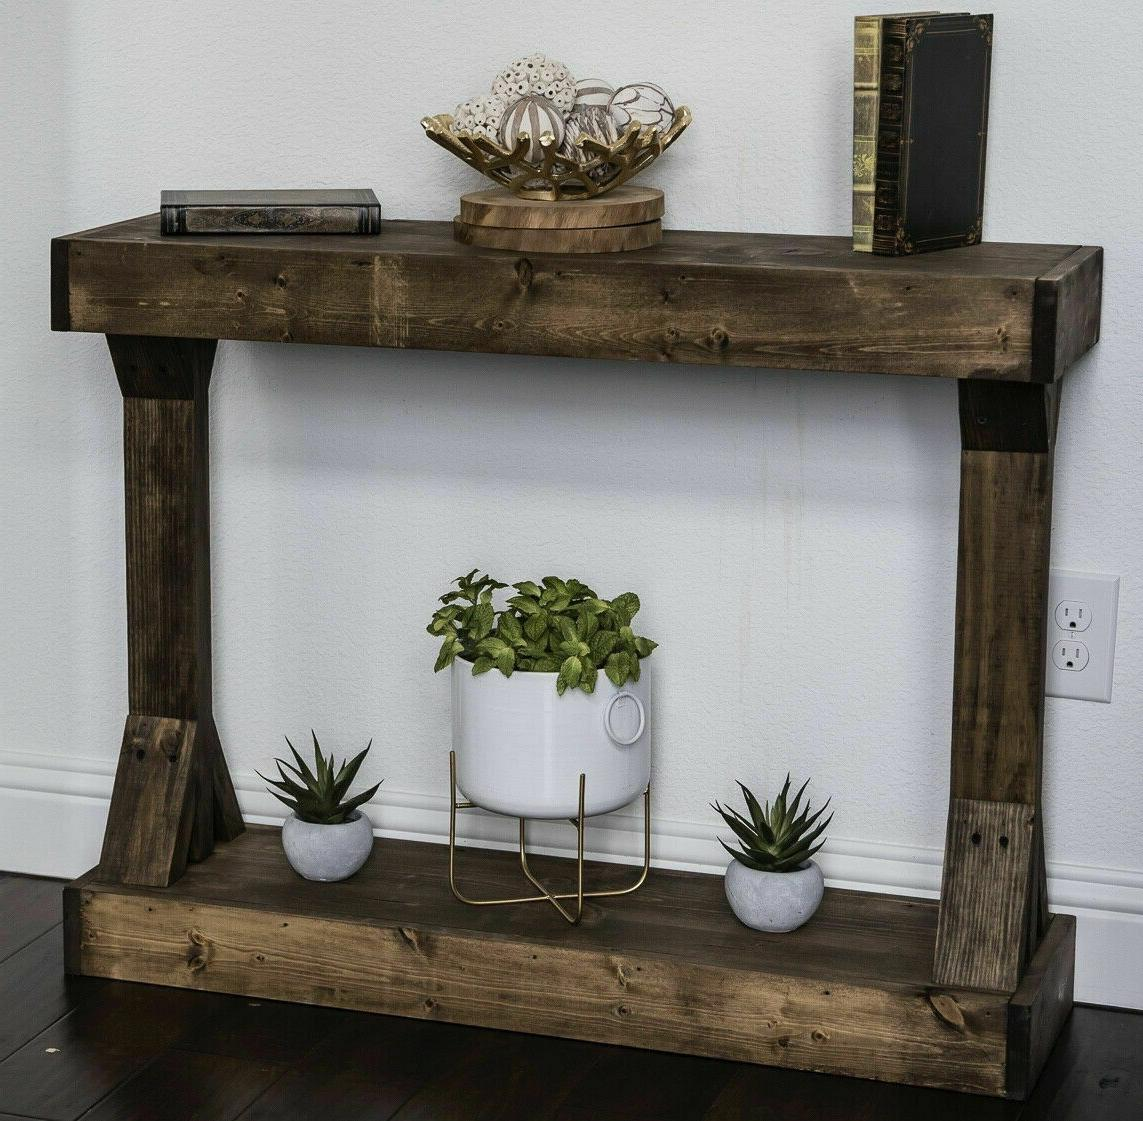 Rustic Farmhouse Solid Wood Shelf Sofa